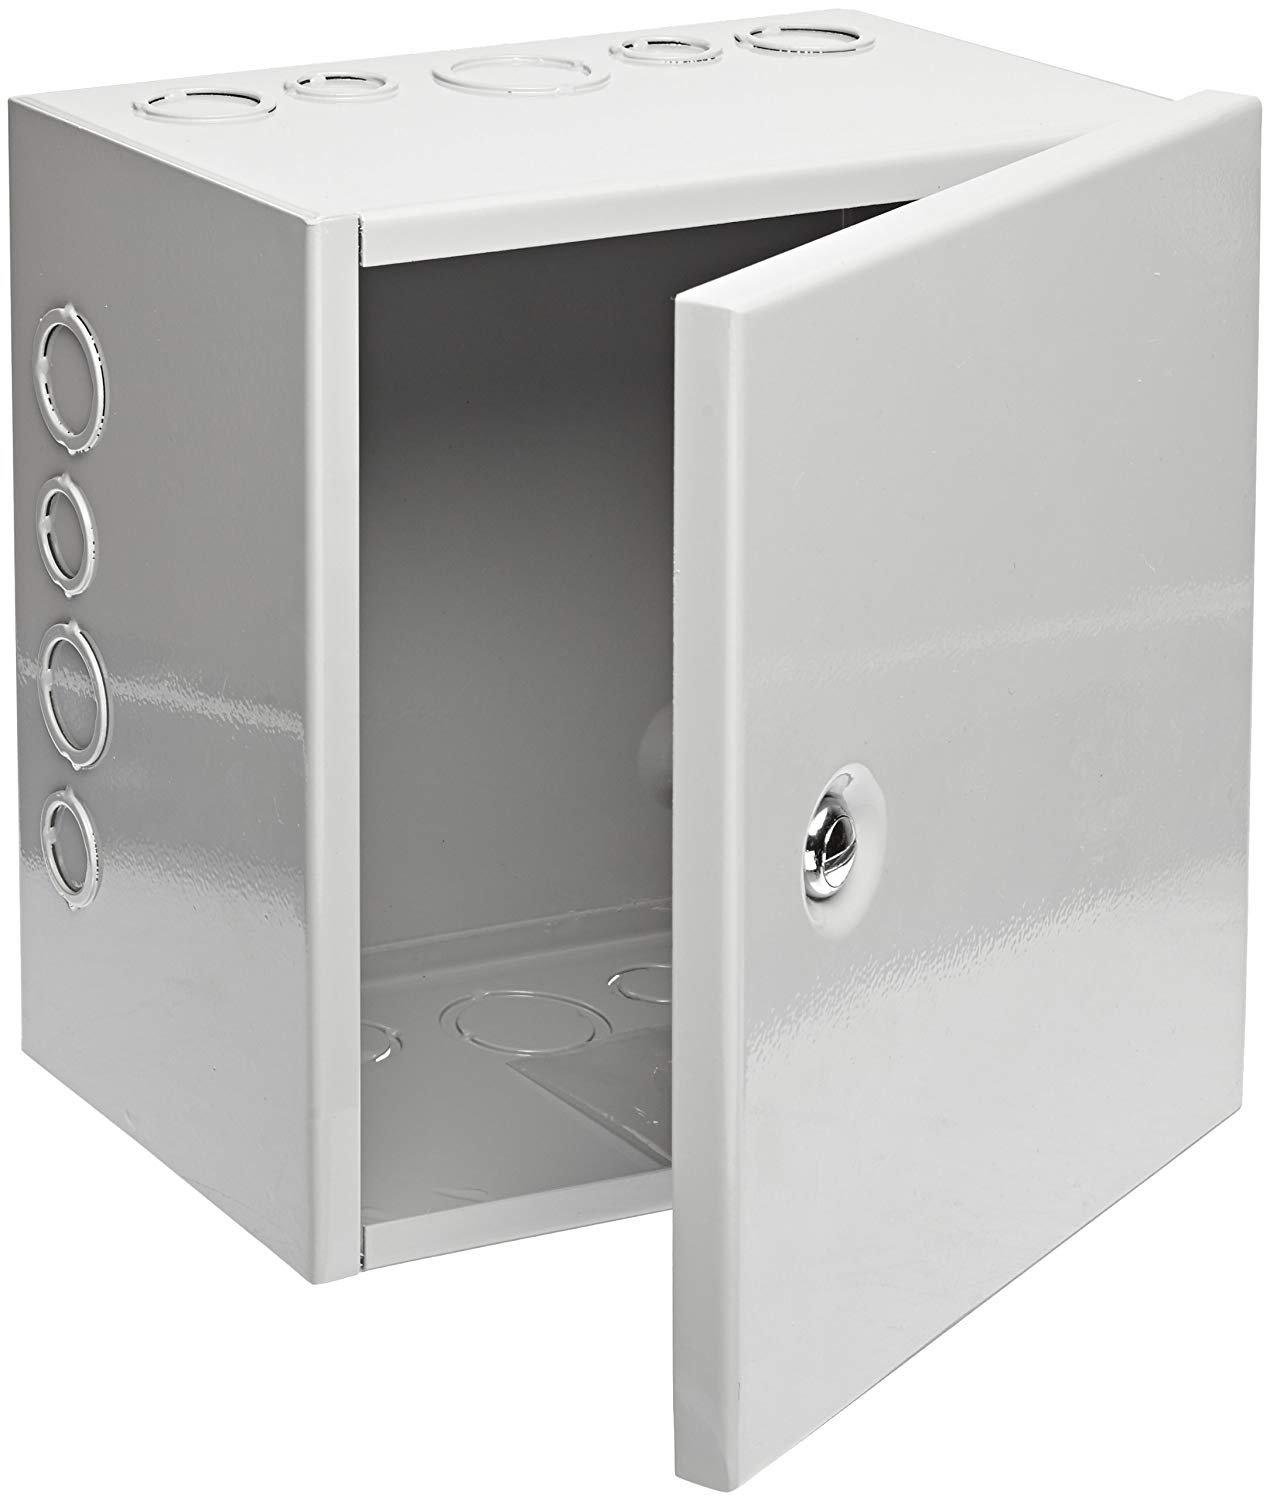 https://www.kdmsteel.com/wp-content/uploads/2020/02/a-NEMA-1-Sheet-Metal-Box-with-Knockout-and-Hinged.jpg